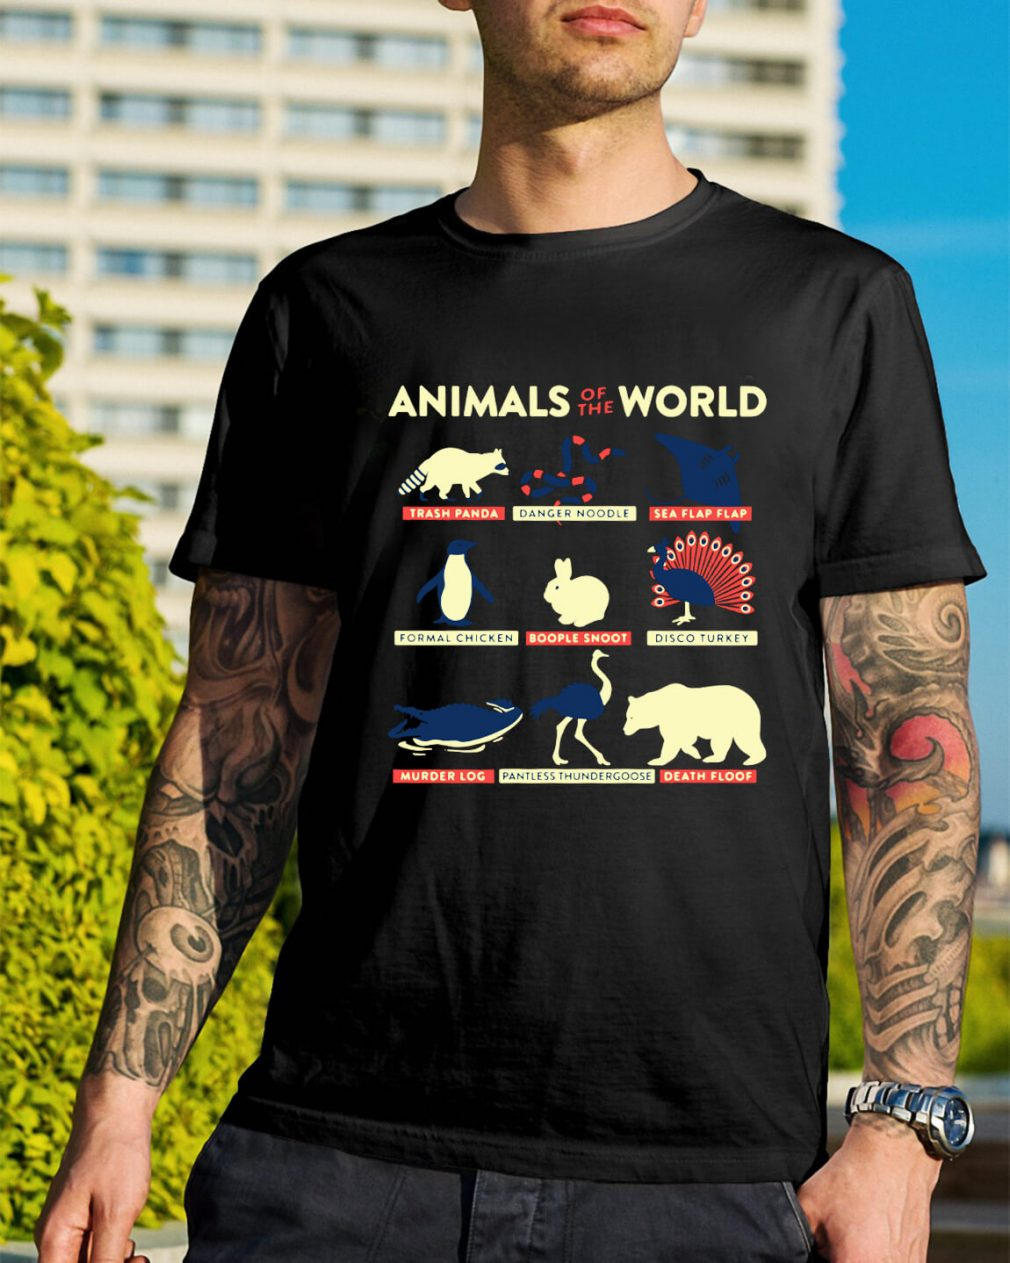 Animal of the world shirt